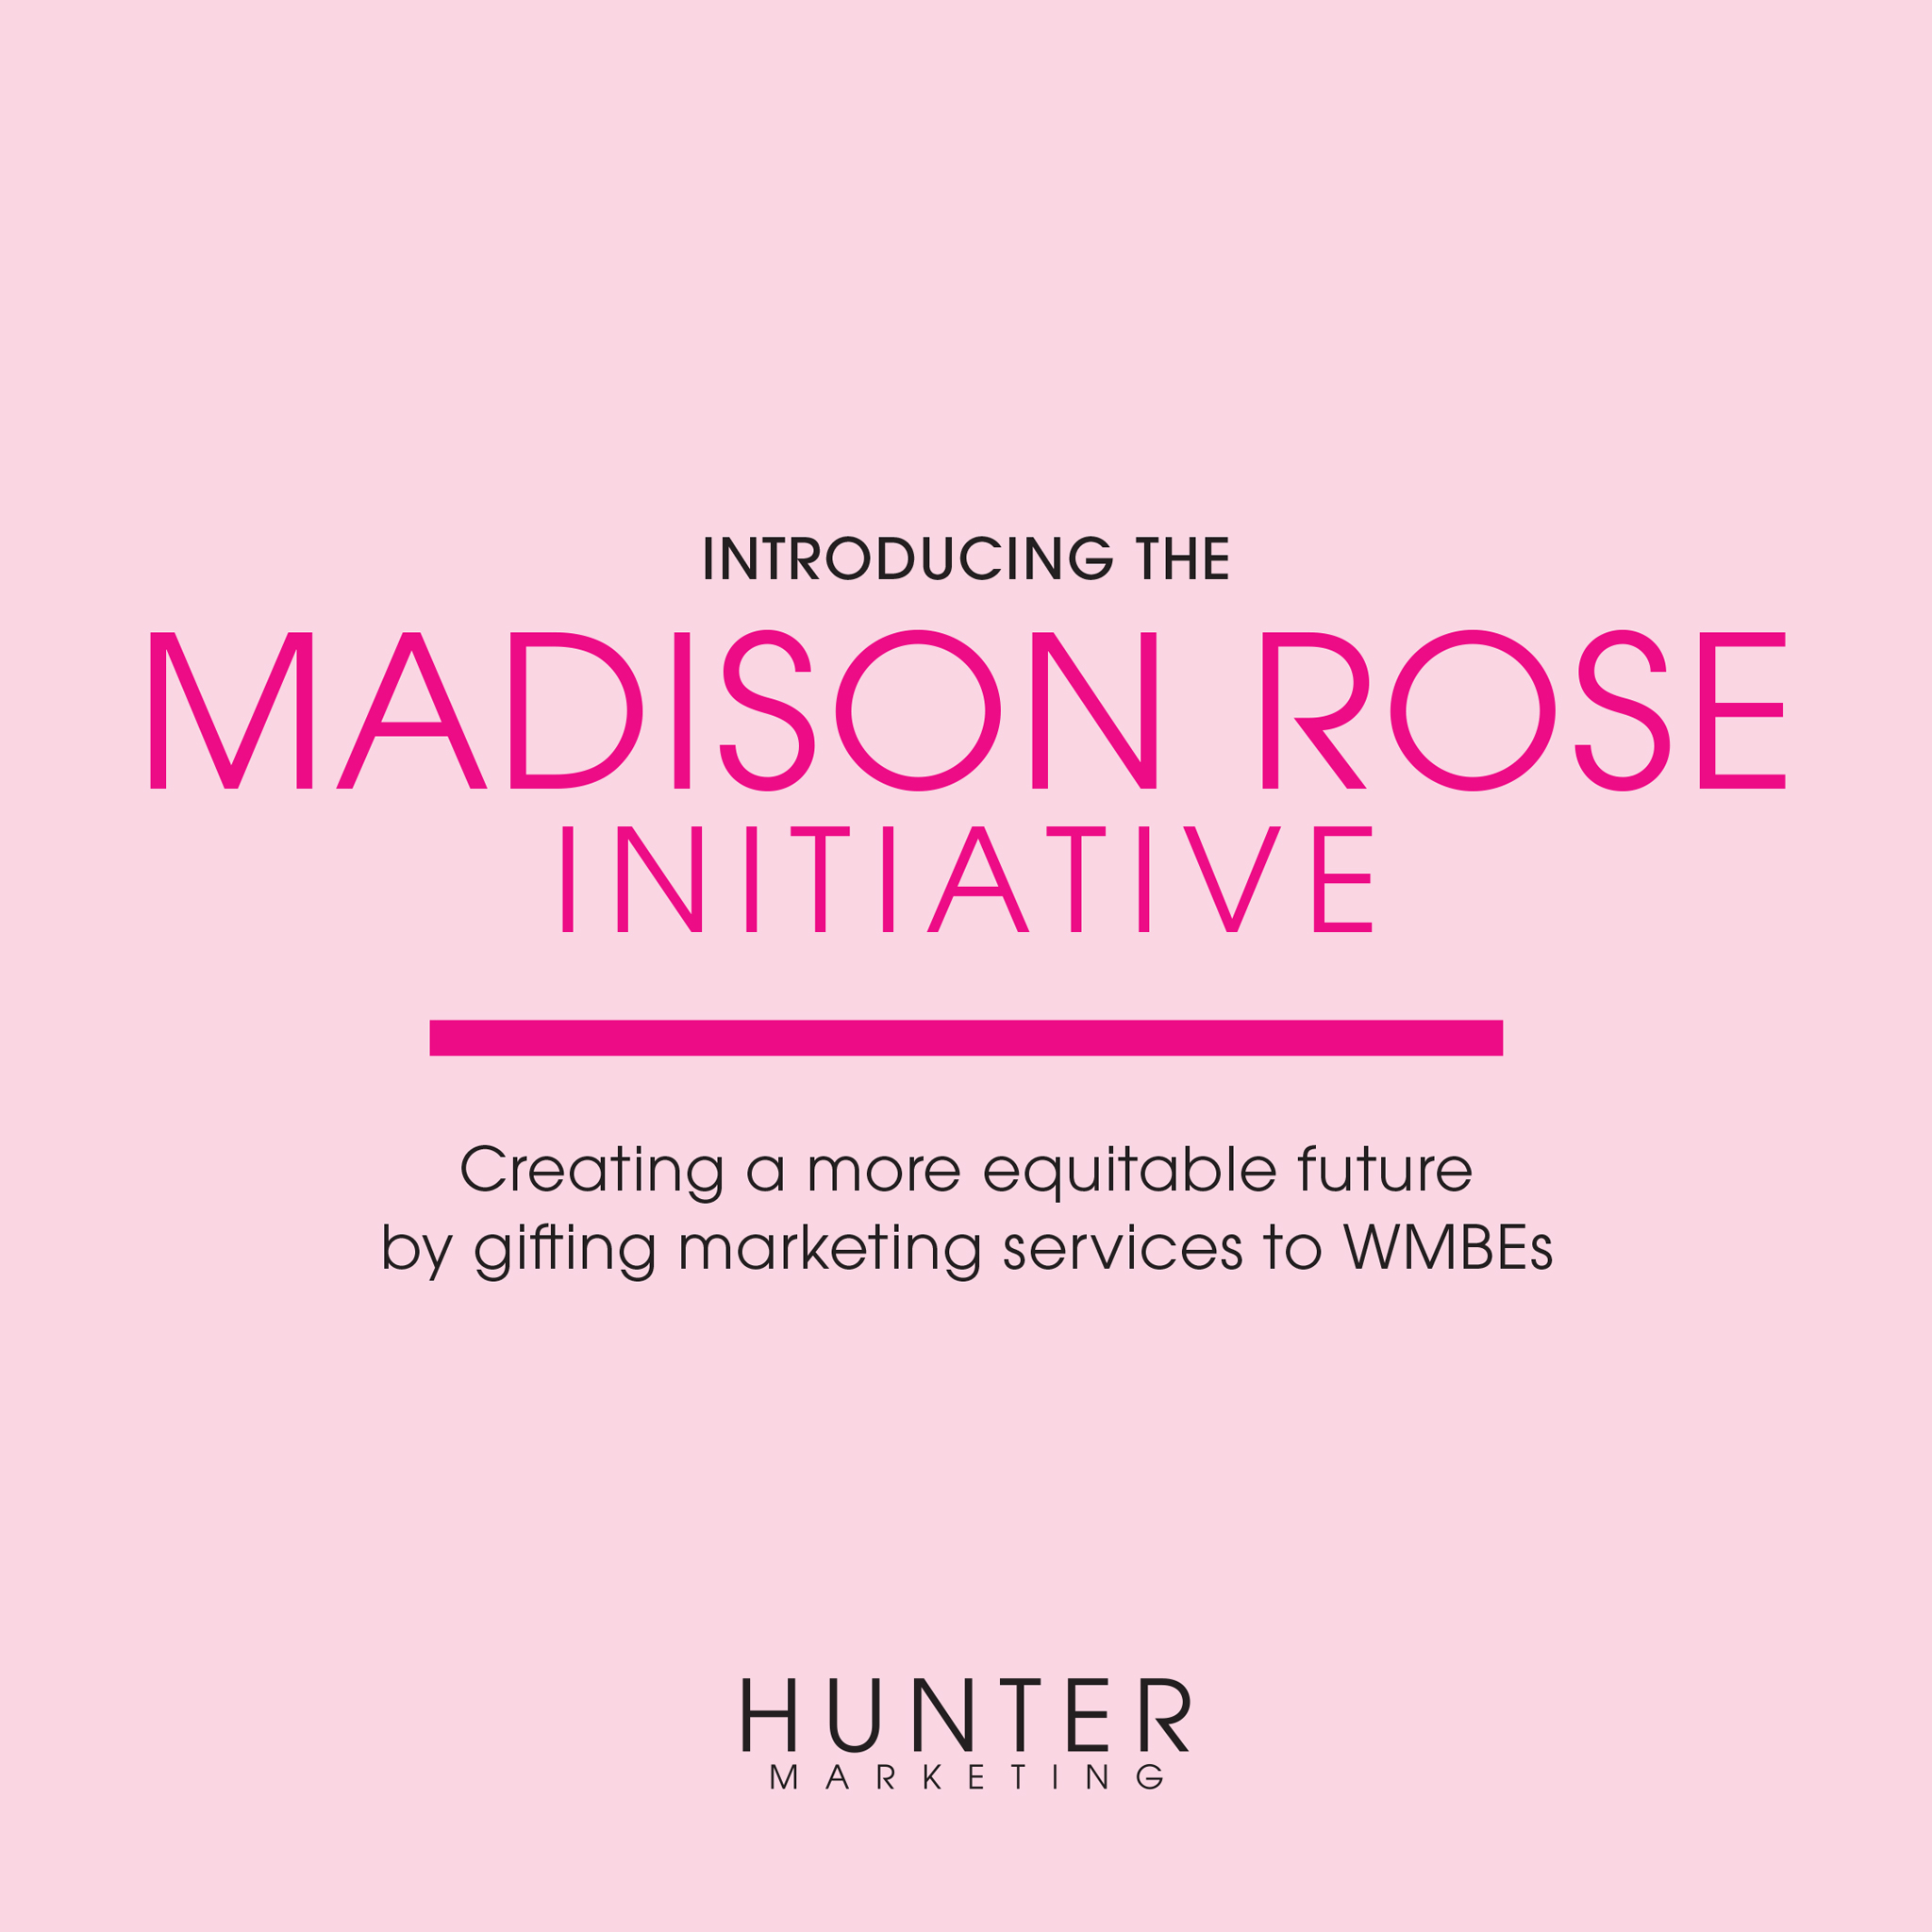 Introducing The Madison Rose Initiative